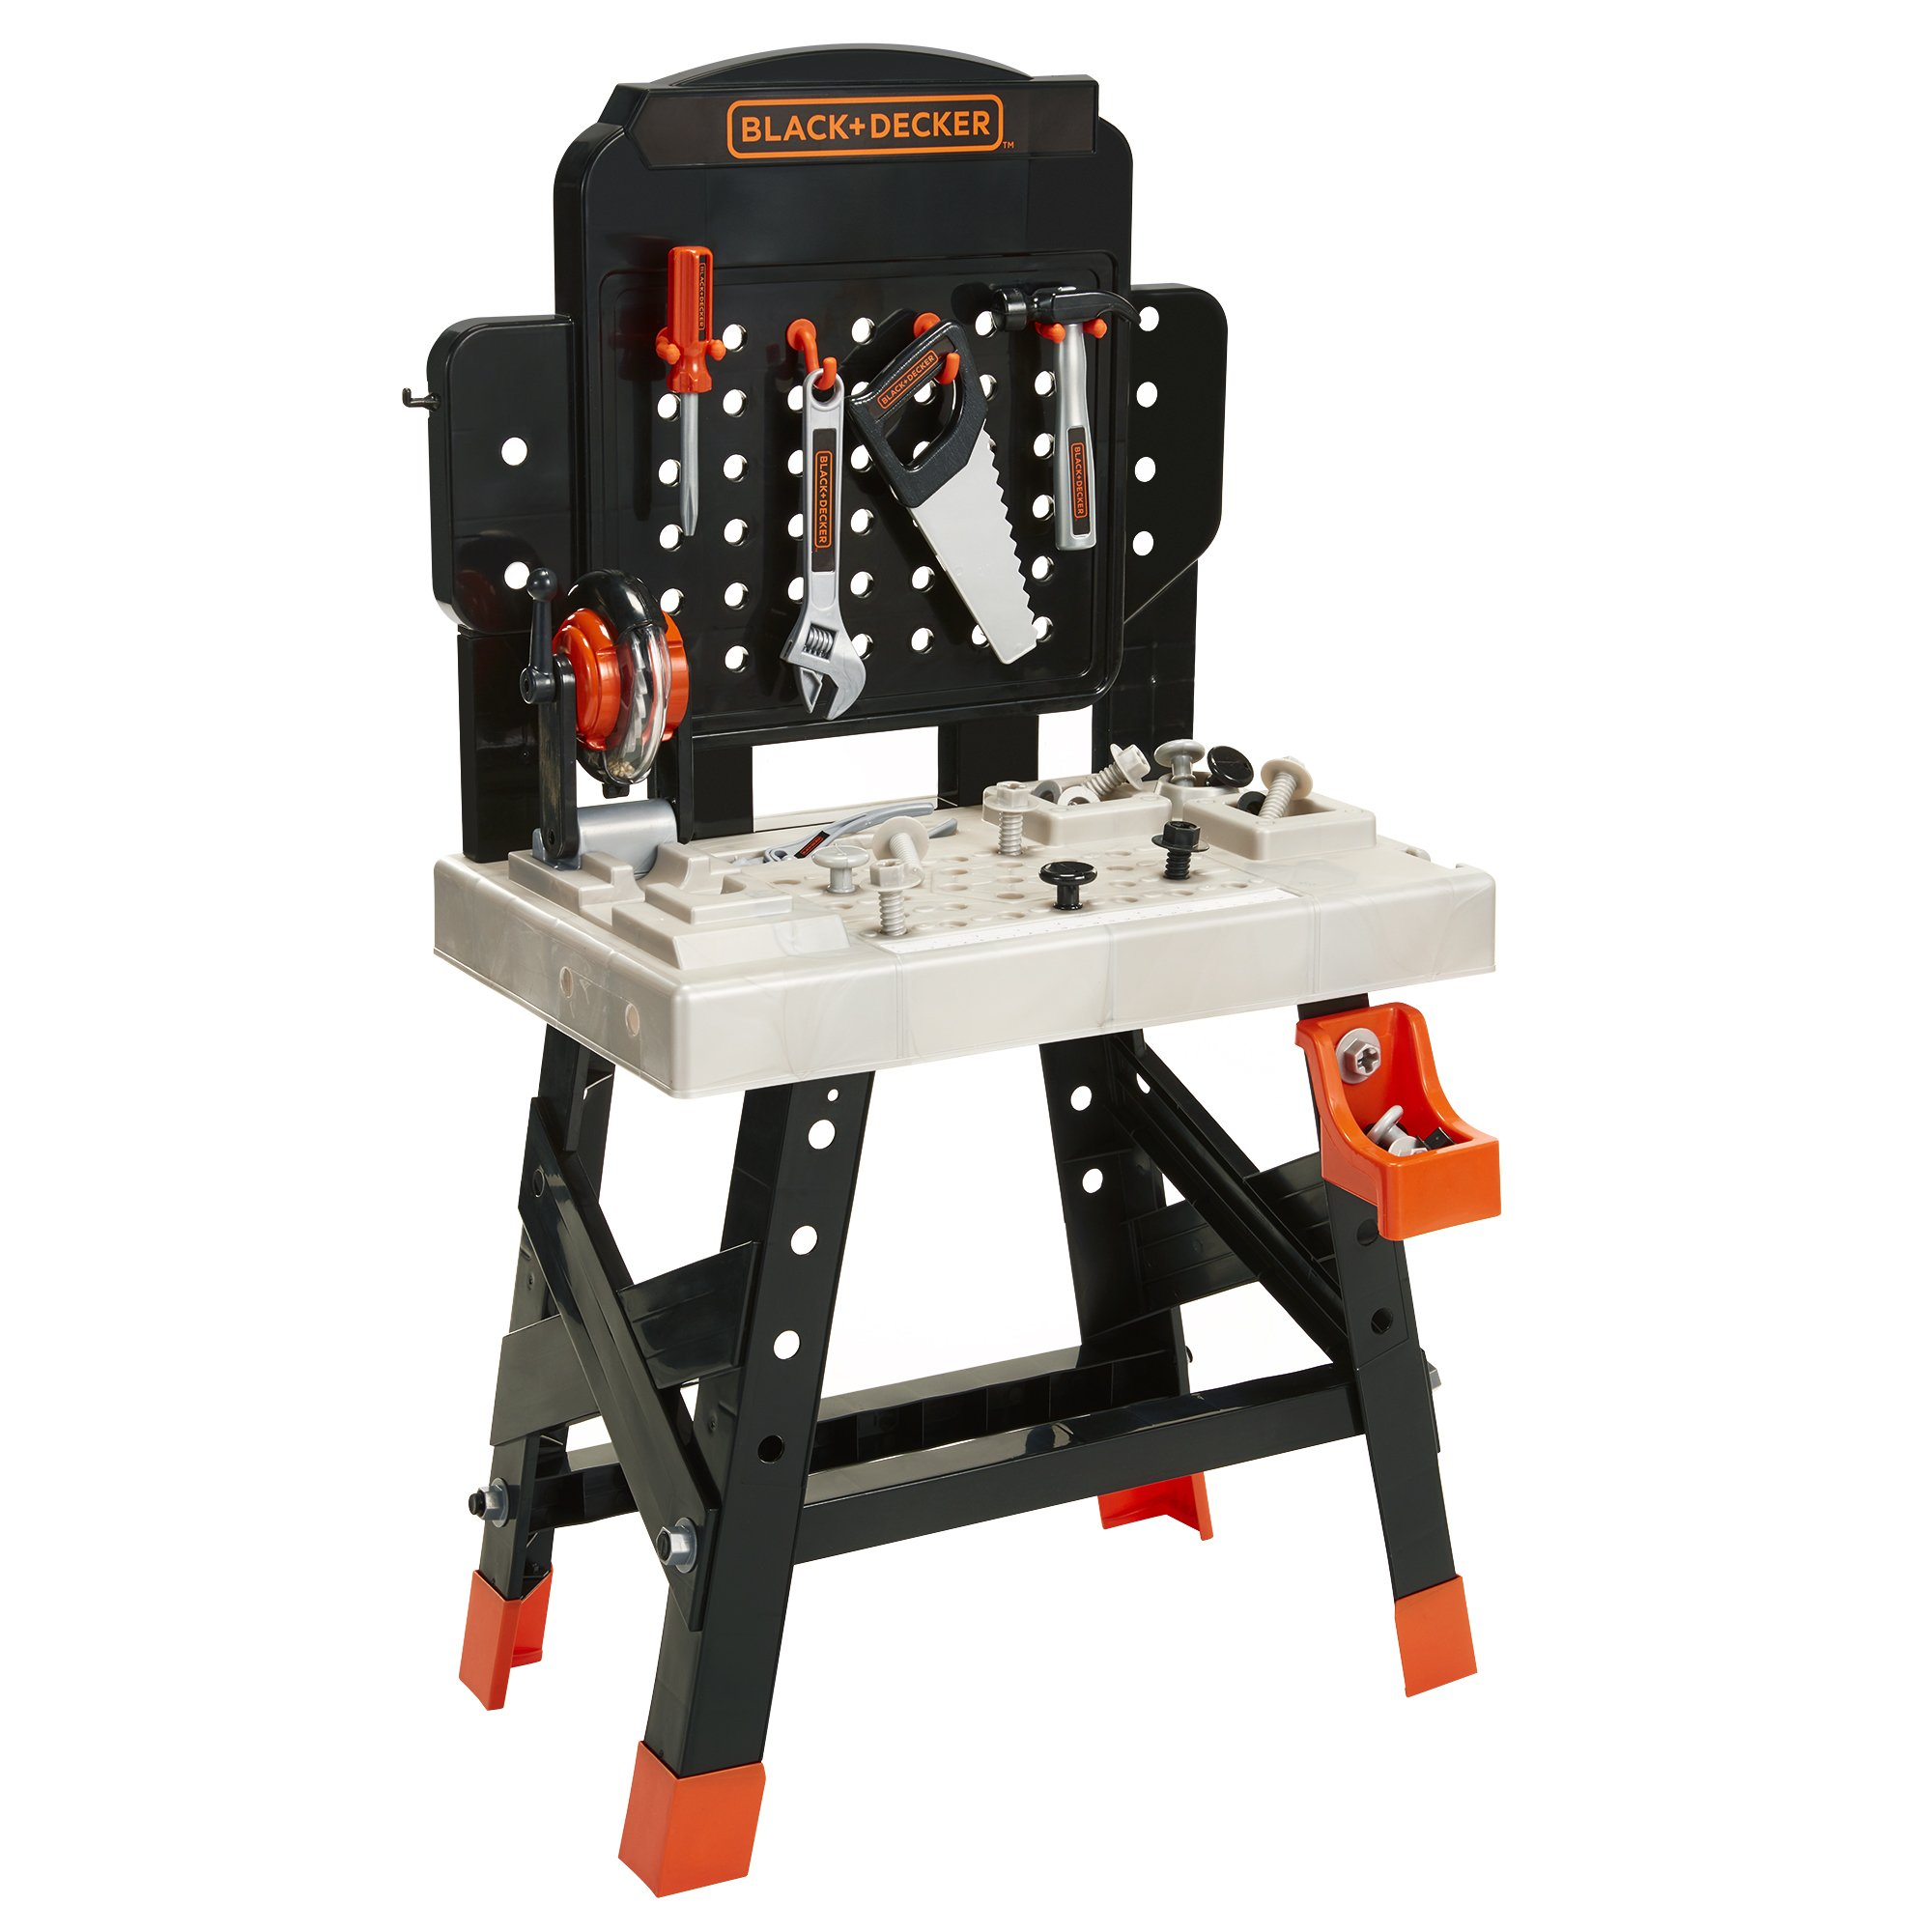 BLACK+DECKER 71382 Jr. Mega Power N' Play Workbench with Realistic Sounds! - 52 Tools & Accessories by BLACK+DECKER (Image #1)